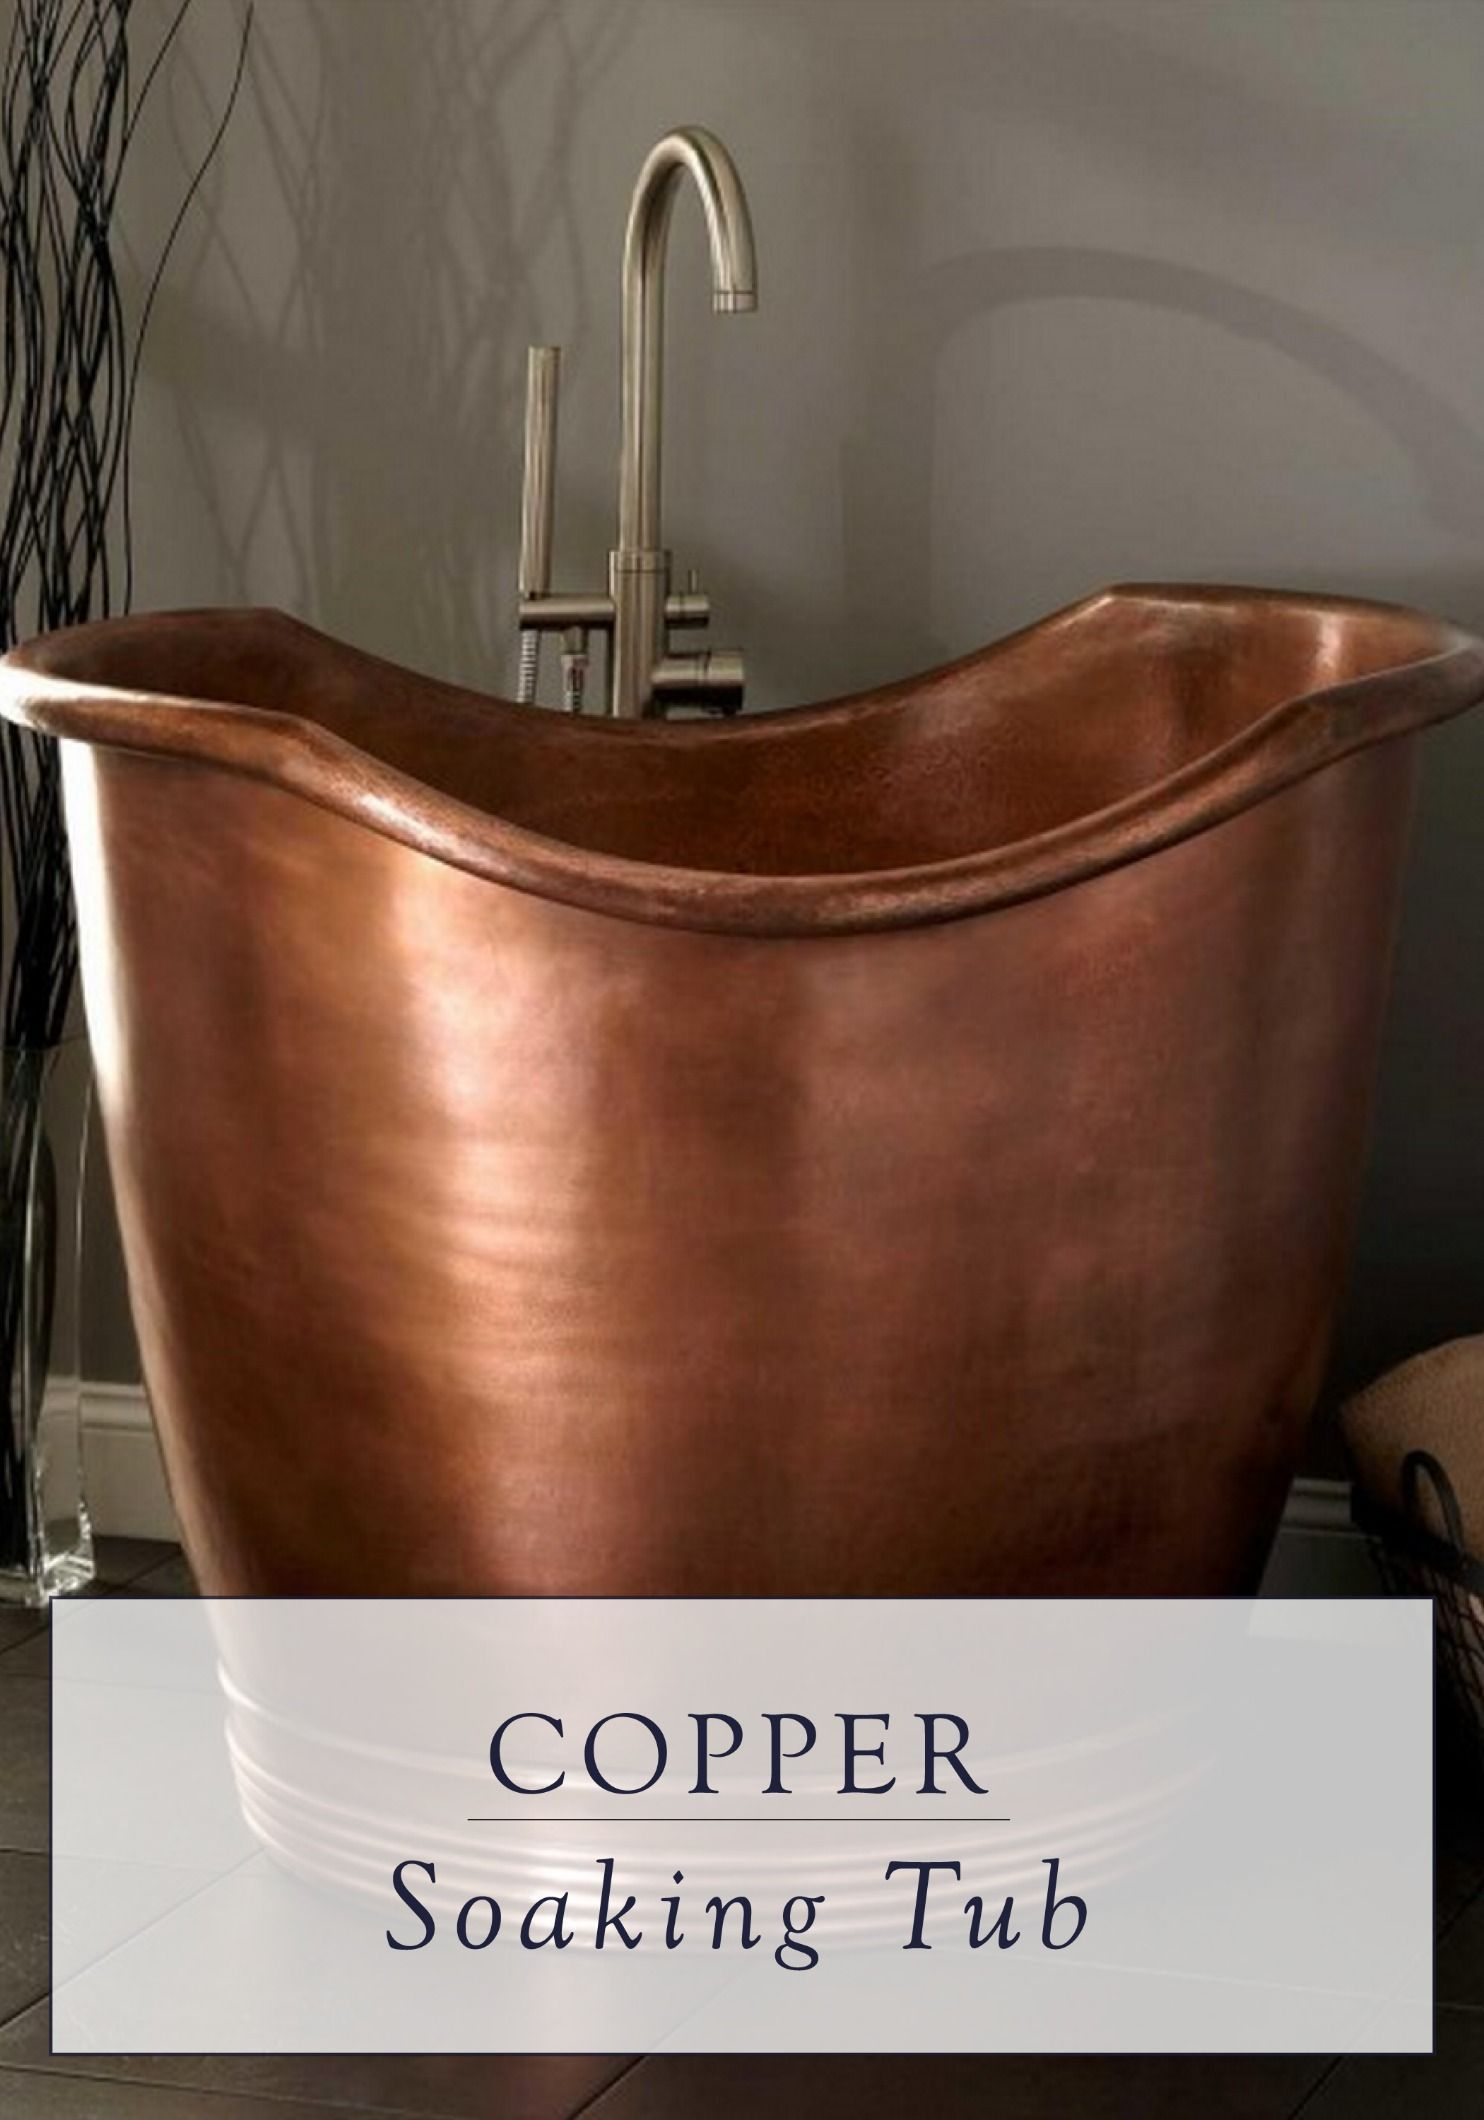 Enjoy The Tranquility Of A Long Bath In This Anese Soaking Tub Its Copper Finish Gives It An Aged Look That Is Absolutely Stunning Rustic And Earthy